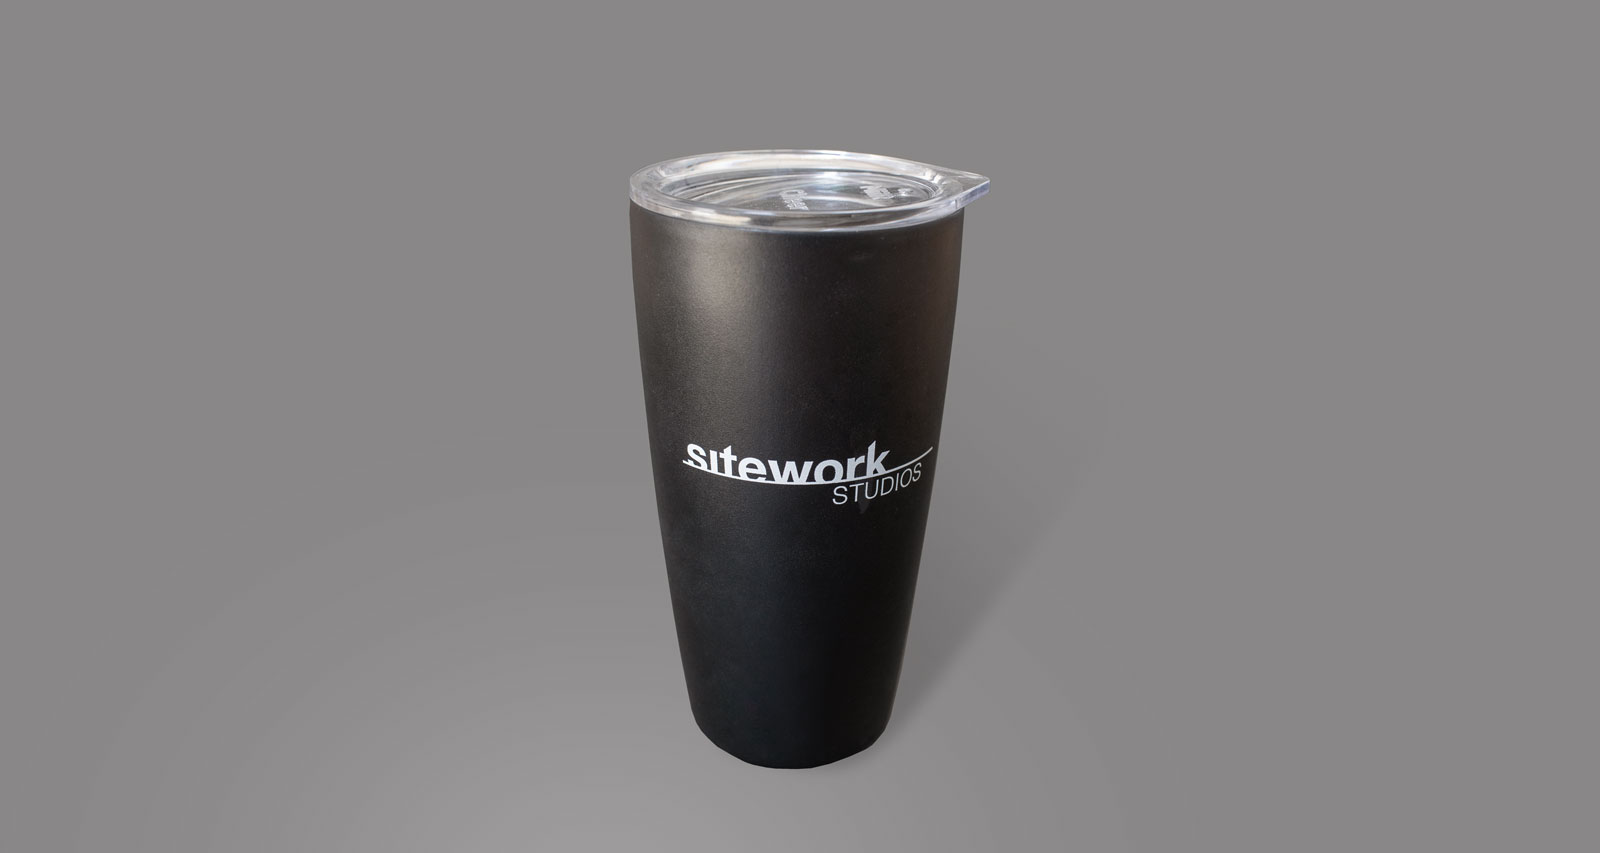 Sitework Studios landscaping logo in white, on a black coffee mug